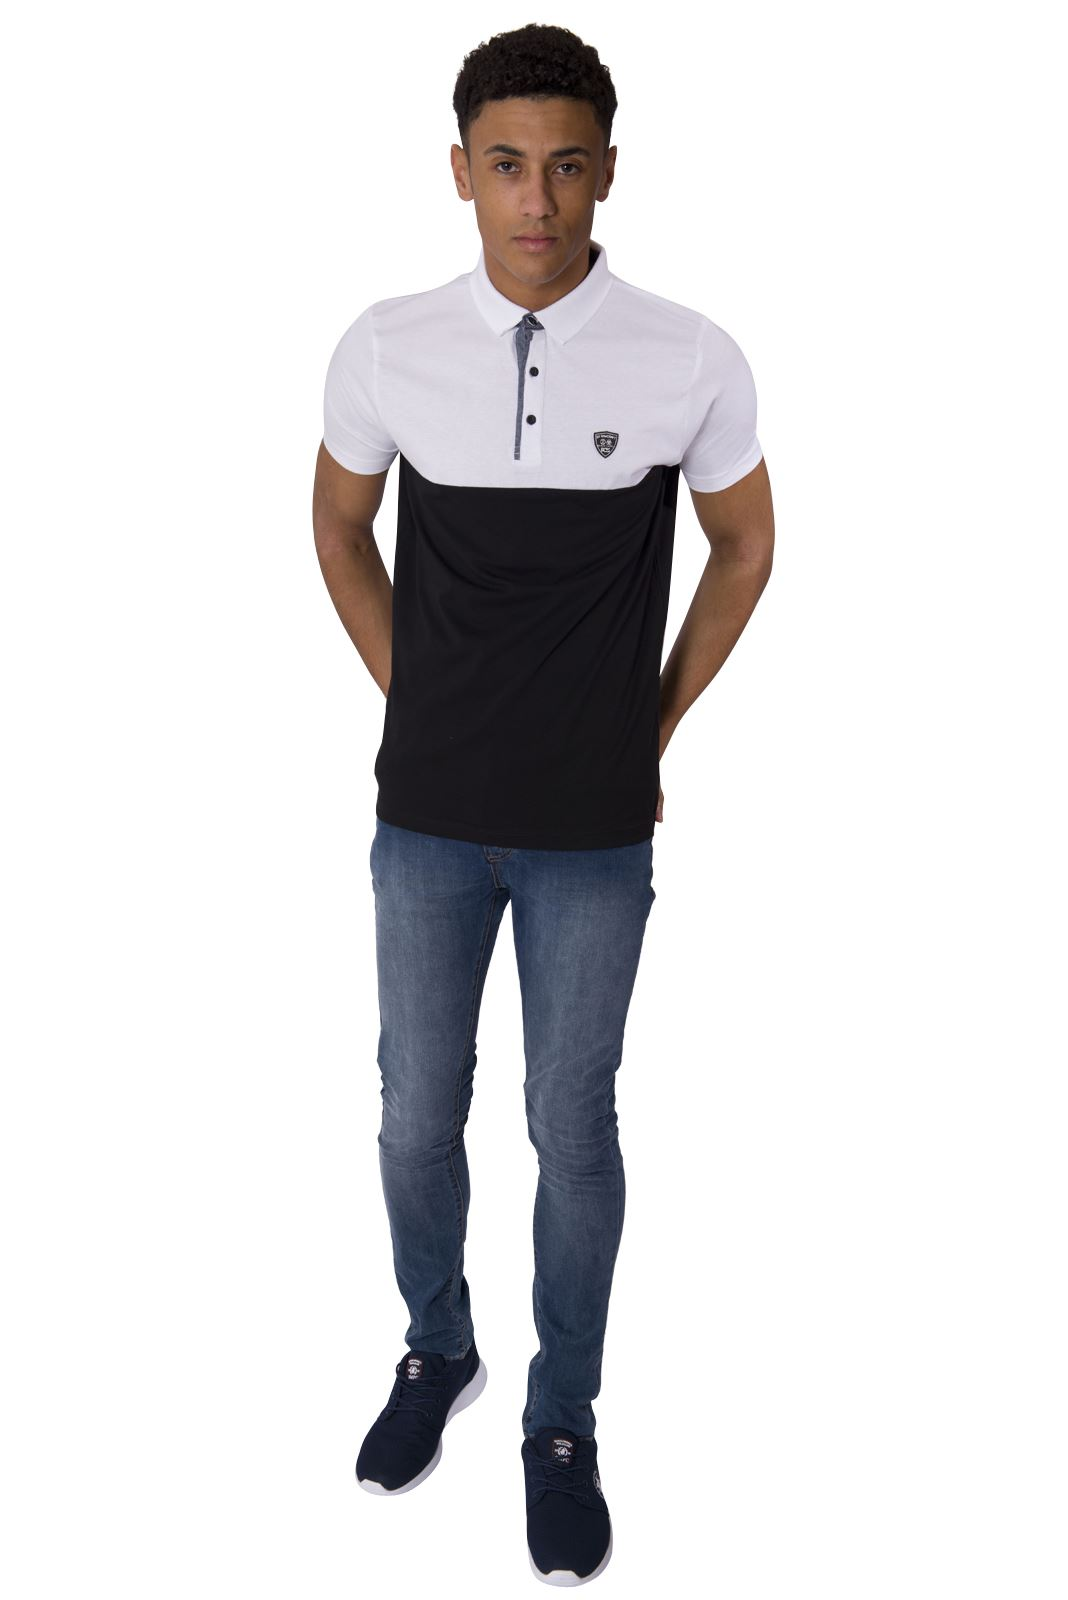 rawcraft-NEUF-Polo-Hommes-Chemise-manche-courte-contraste-couleur-col-chemise